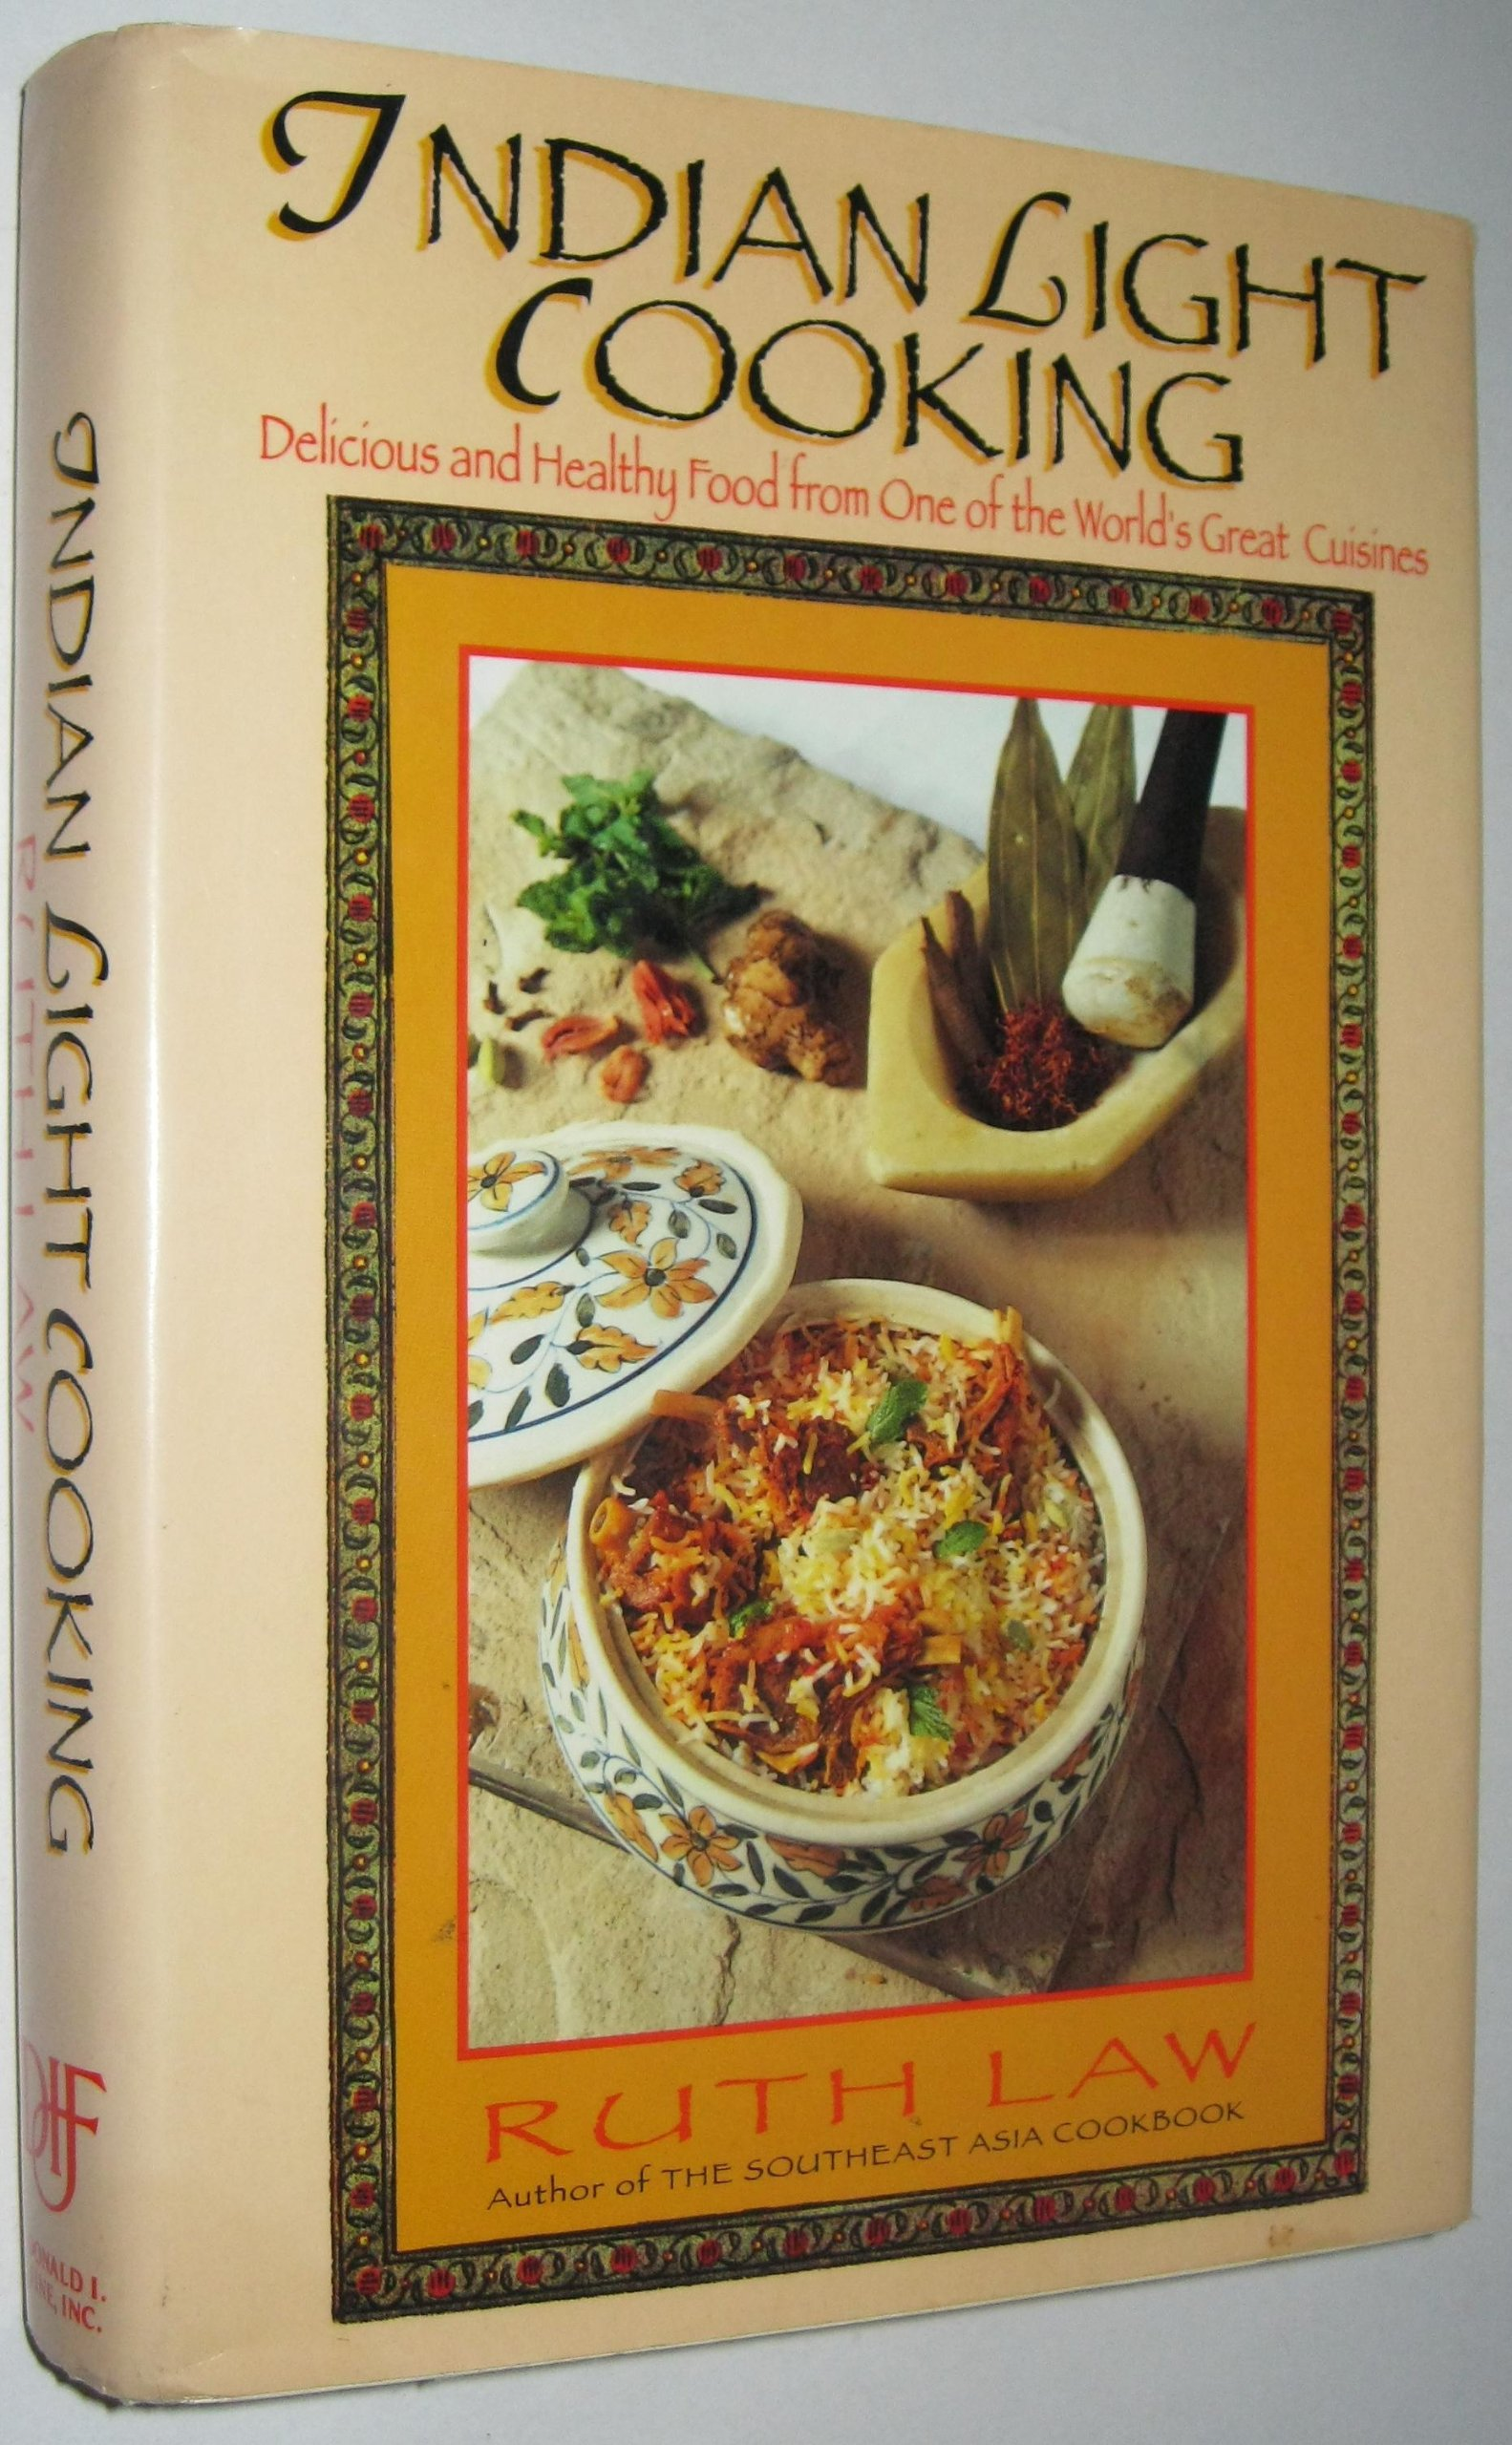 Indian light cooking delicious and healthy foods from one of the indian light cooking delicious and healthy foods from one of the worlds great cuisines ruth law 9781556113895 amazon books forumfinder Images